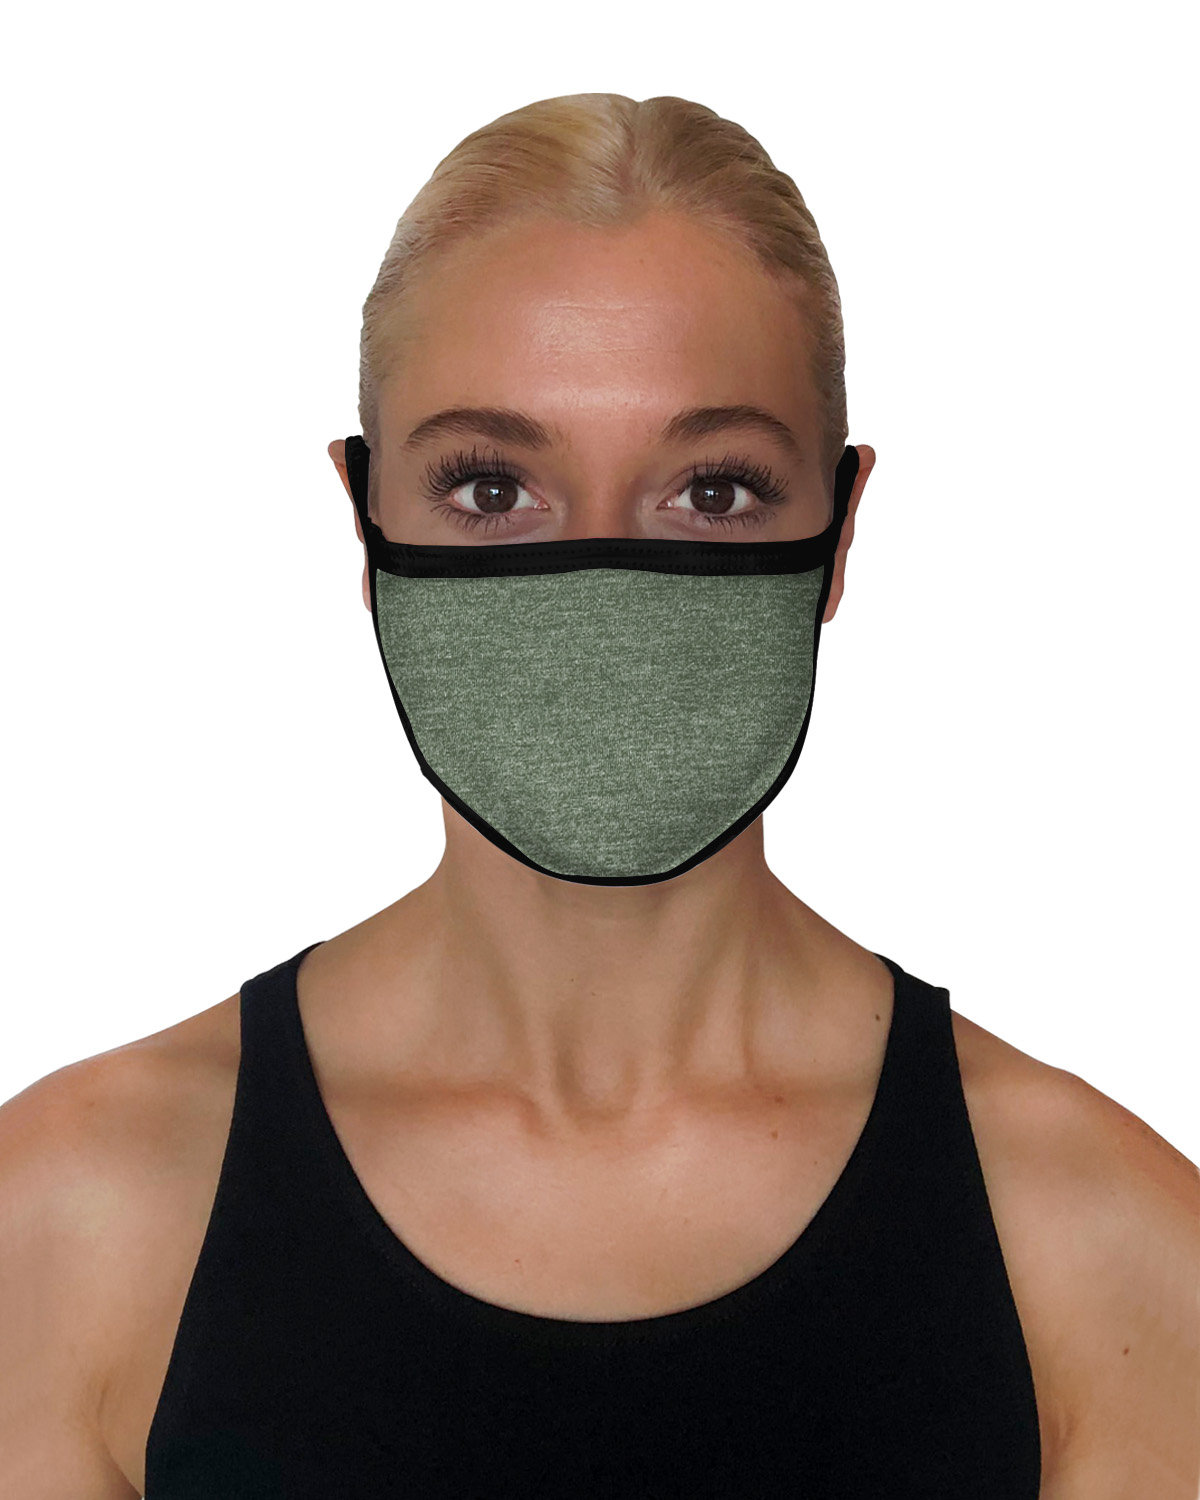 StarTee Drop Ship Unisex 2-Layer Cotton Face Mask MLTRY GREEN/ BLK